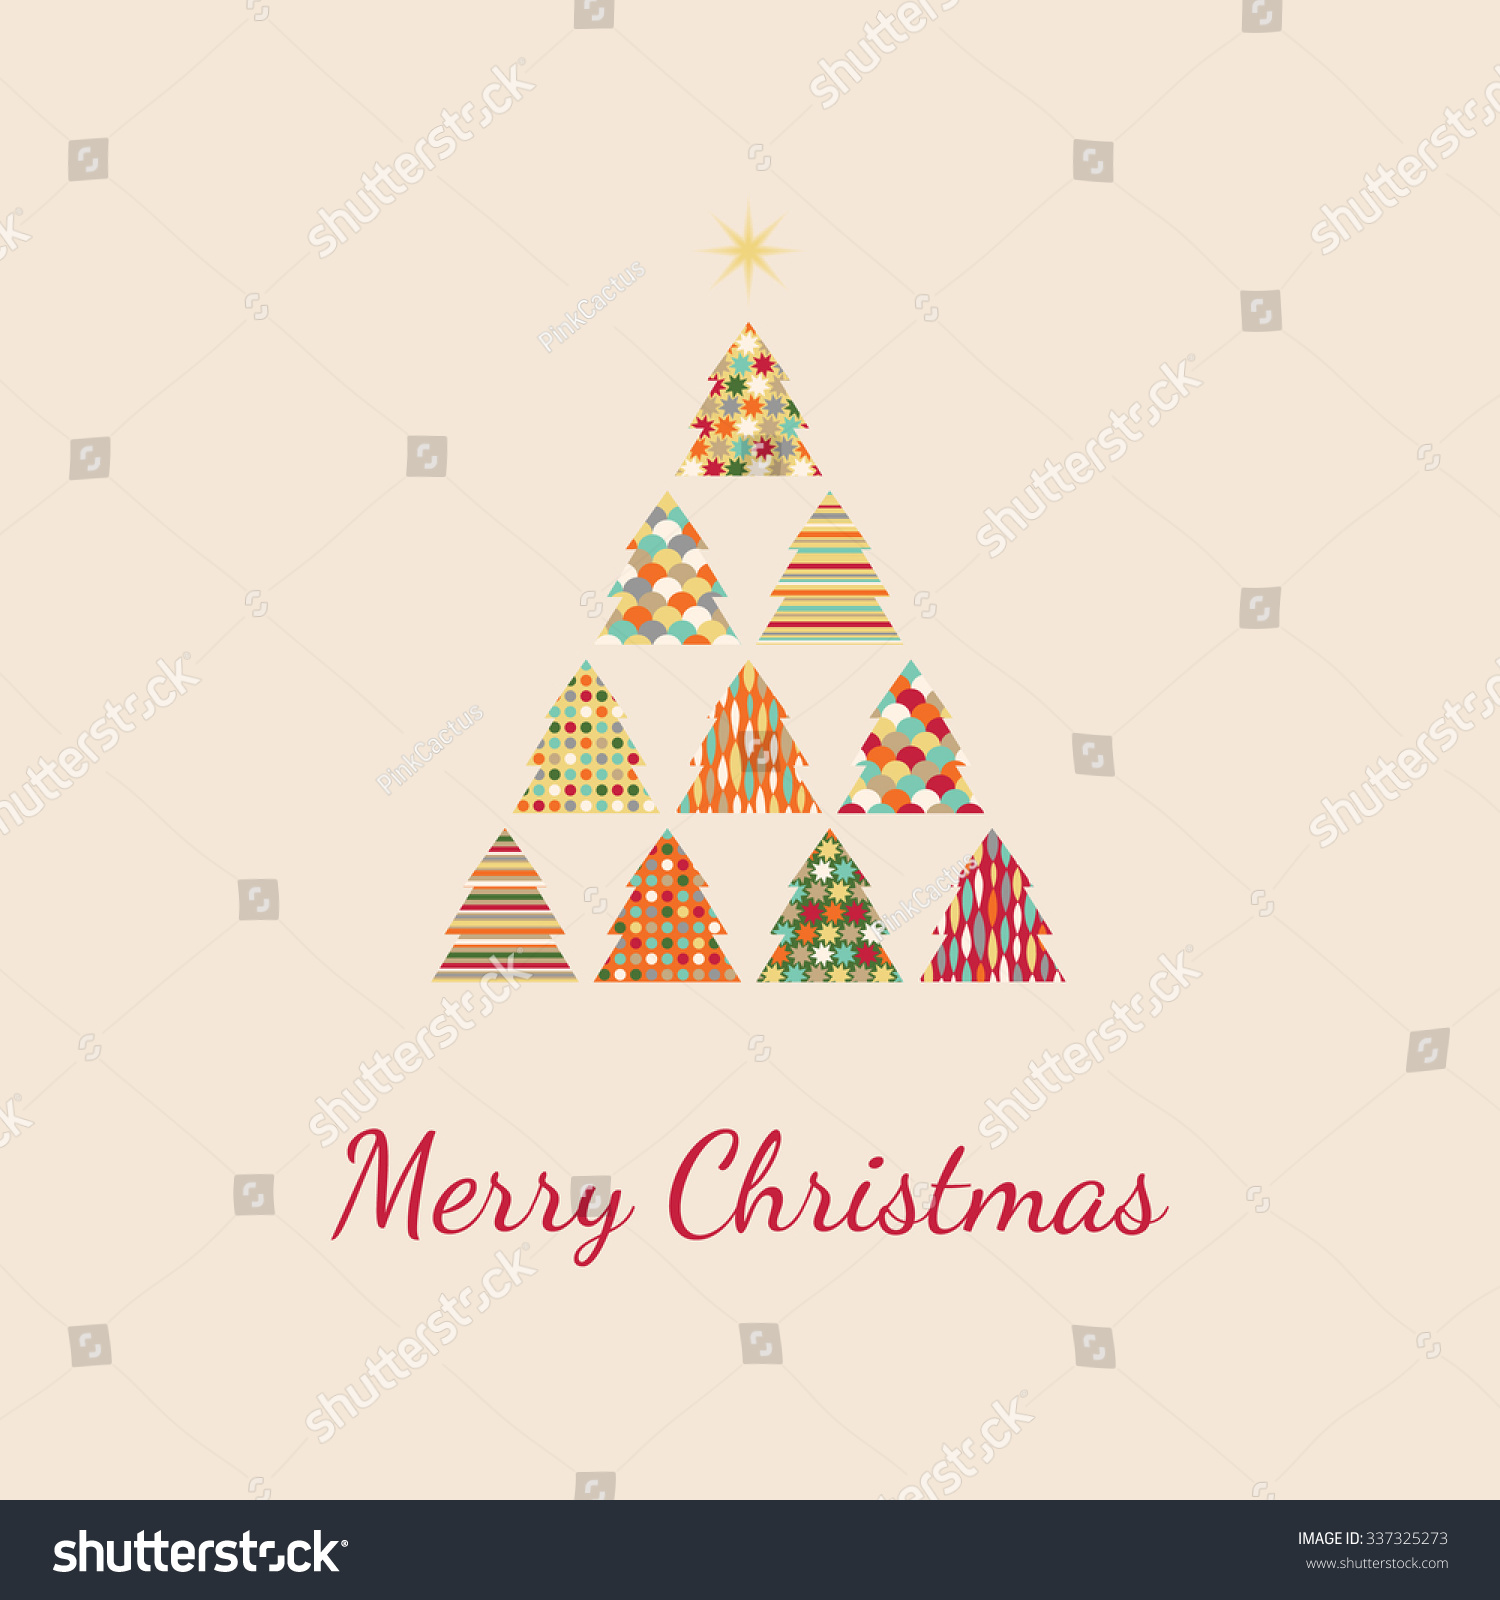 retro christmas card merry christmas patterned christmas trees - Retro Christmas Tree